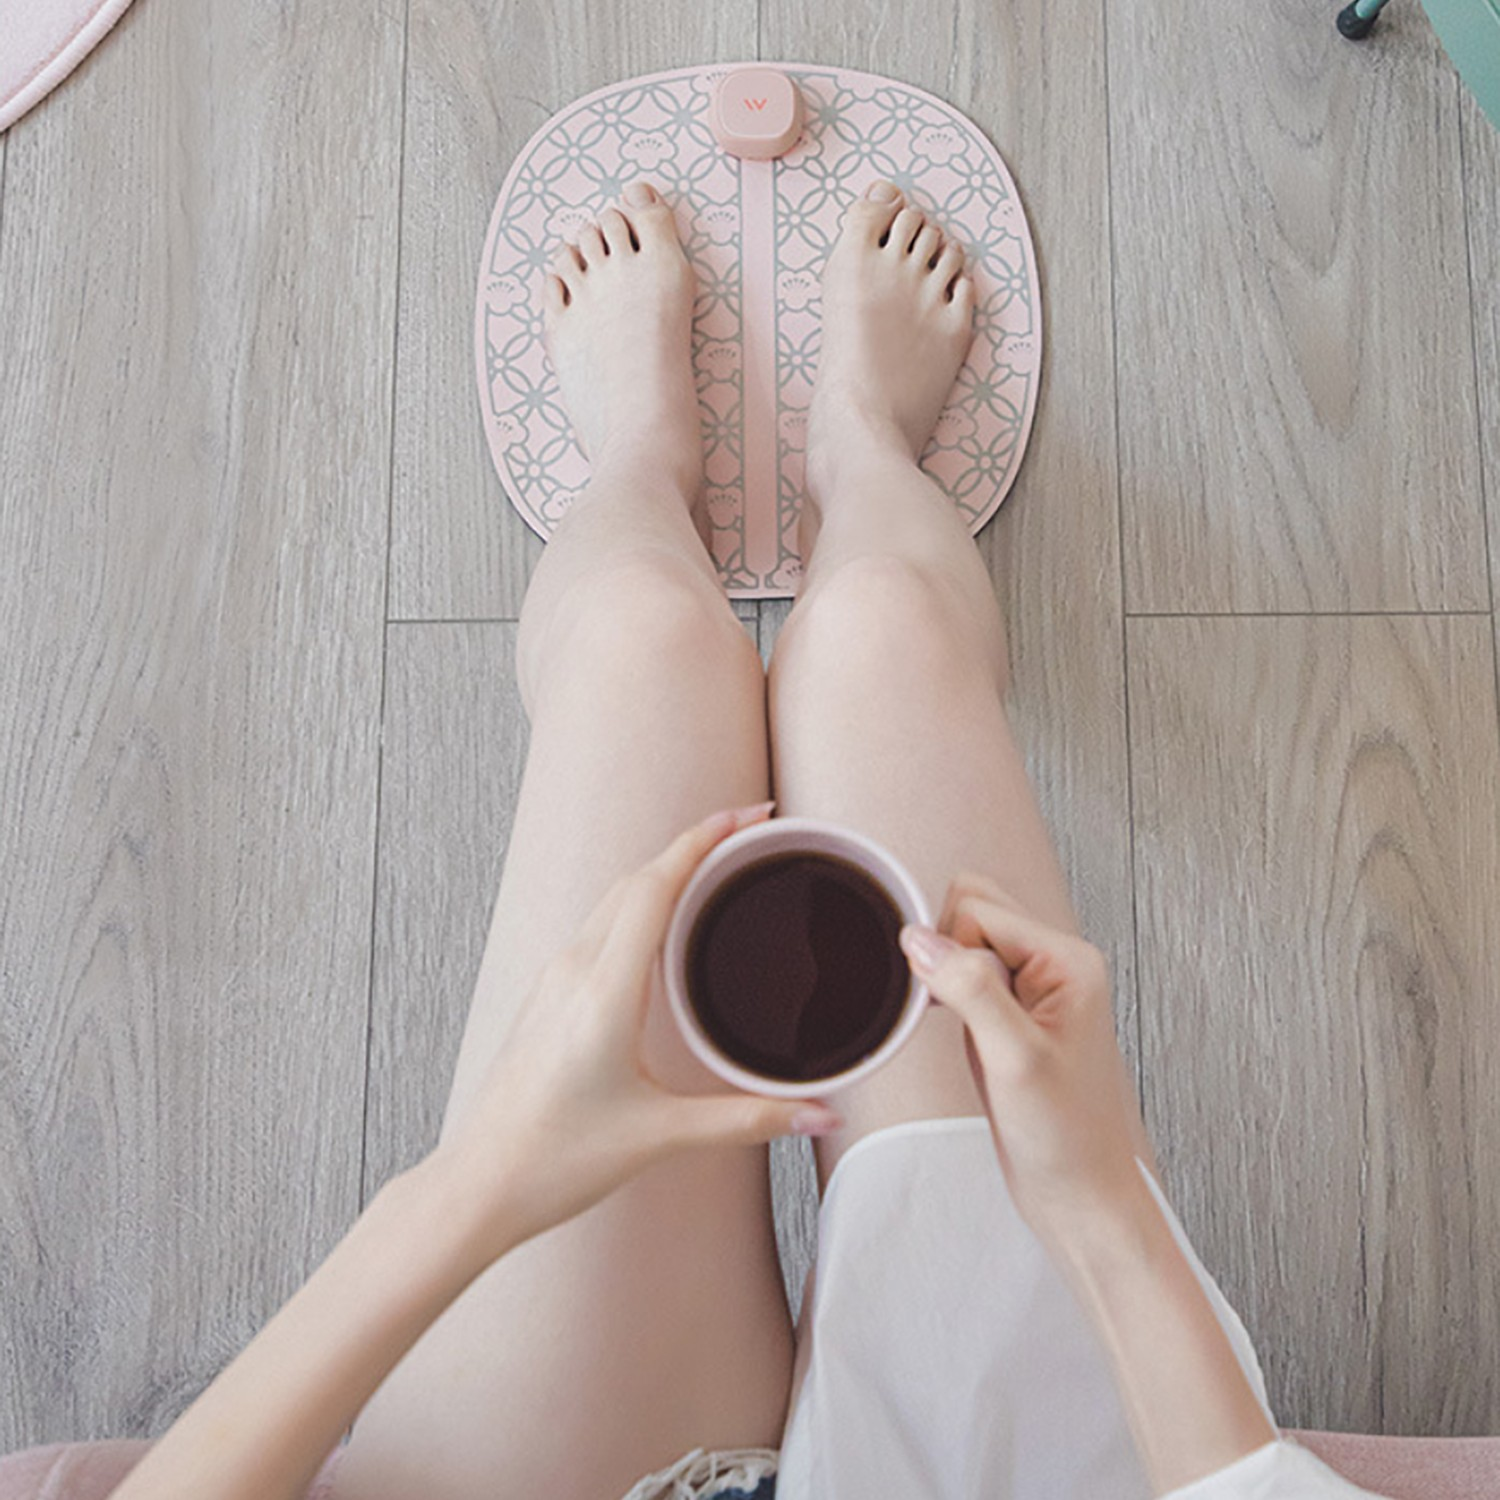 relax while having coffee